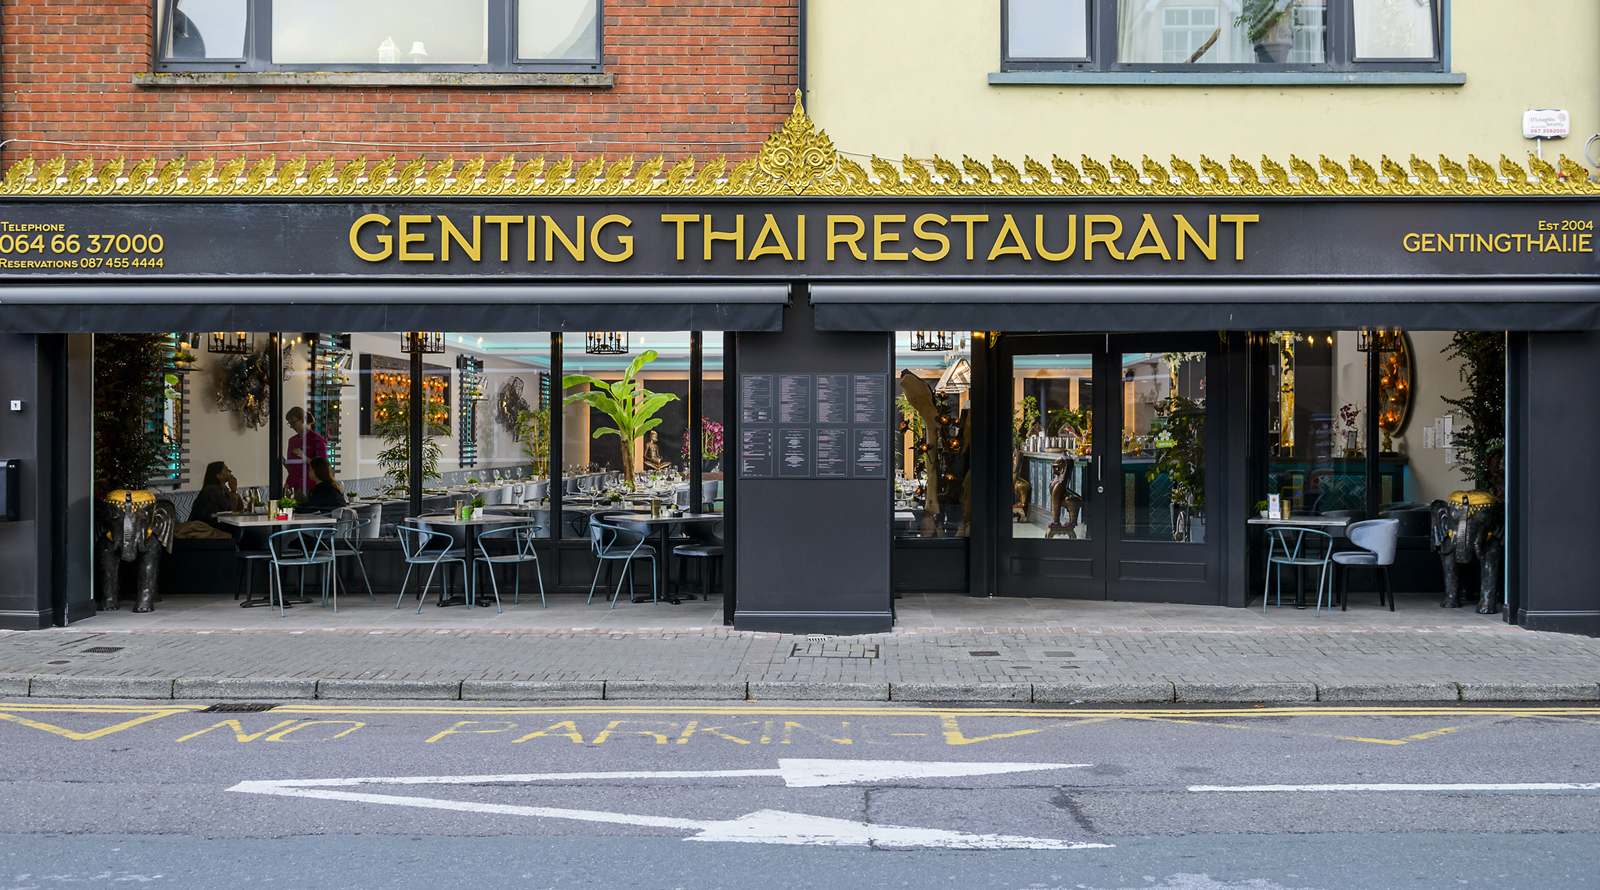 Genting Thai Restaurant Killarney Ireland